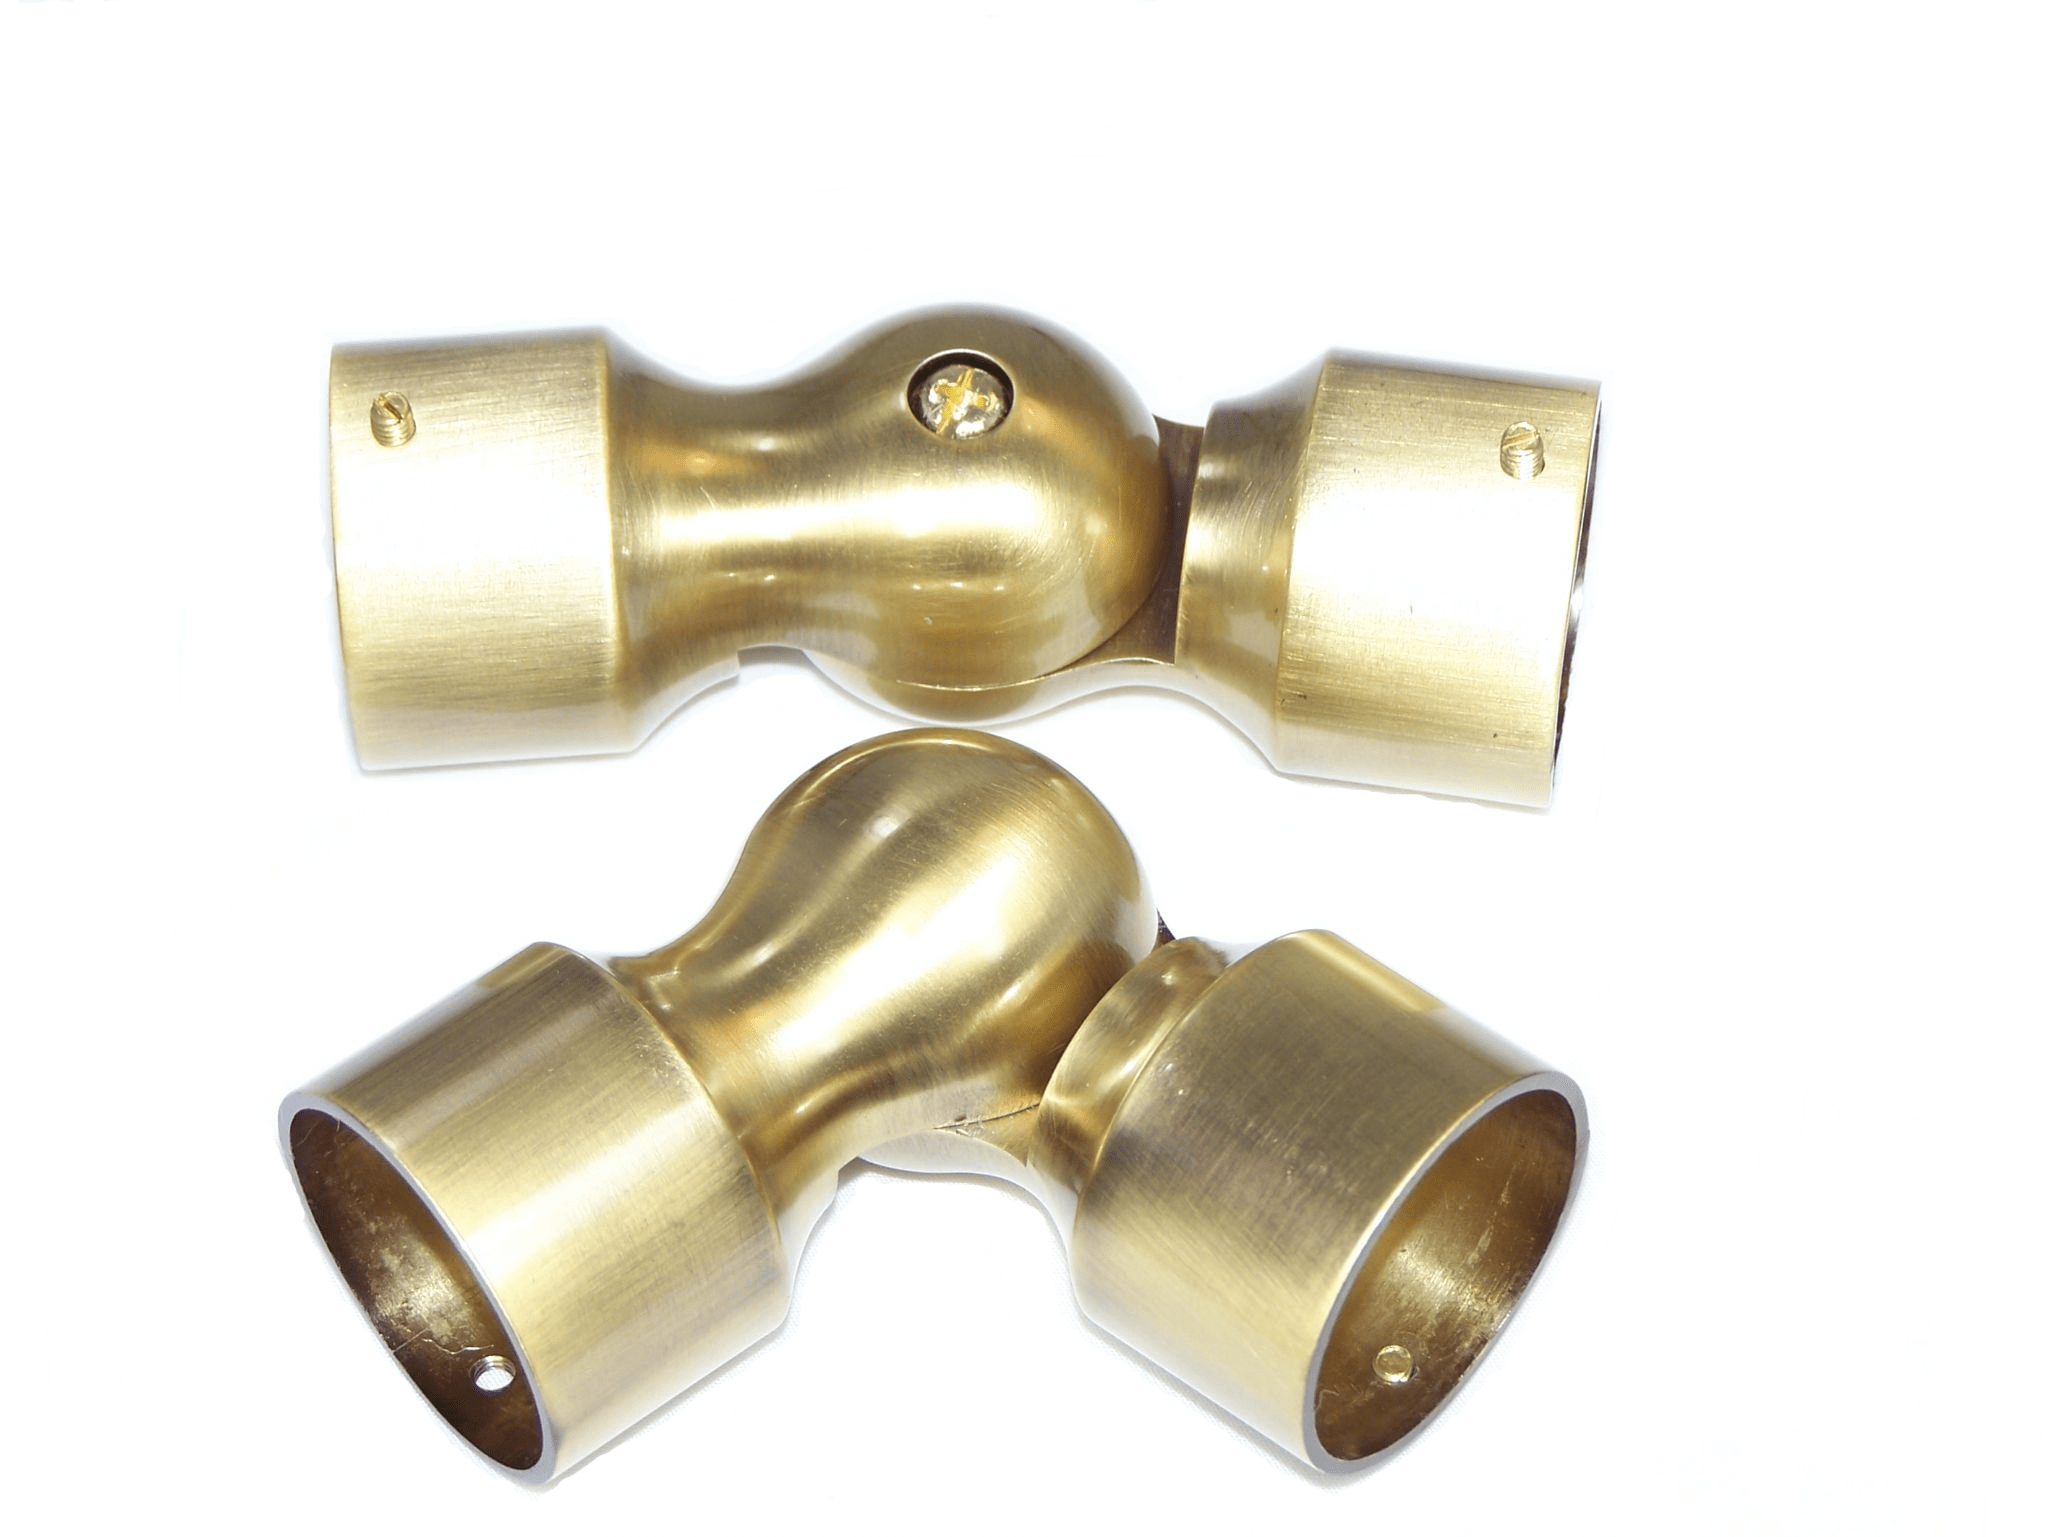 https www thecurtainpolecompany co uk 1 burnished antique brass bay window curtain pole corner joint elbow 35mm dia 7049 p asp